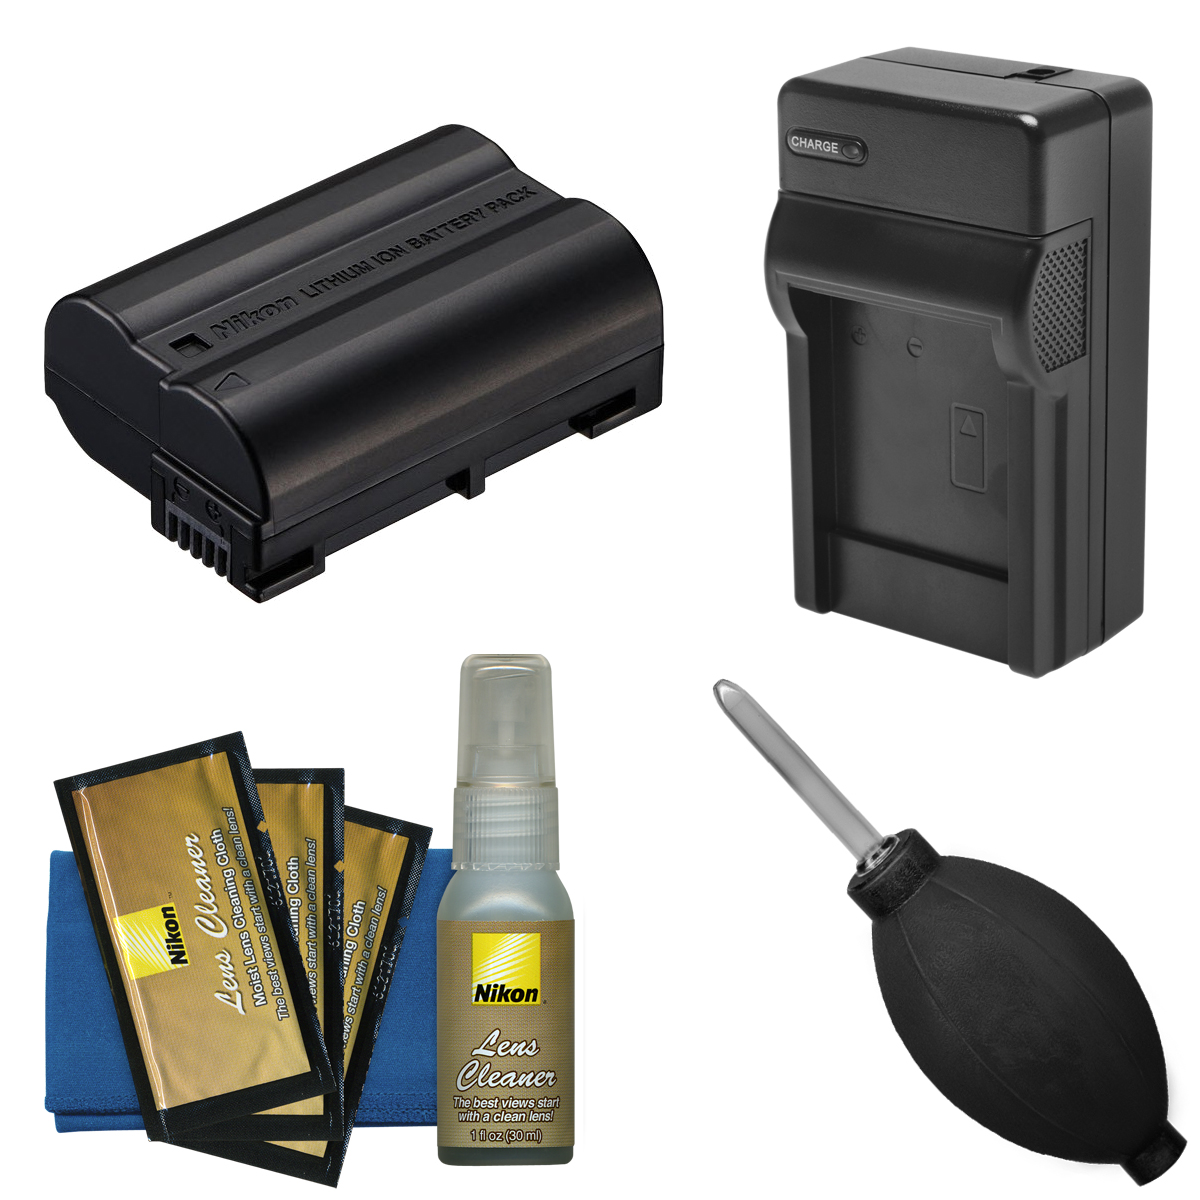 Nikon EN-EL15 Rechargeable Li-ion Battery with Charger + Nikon Cleaning Kit